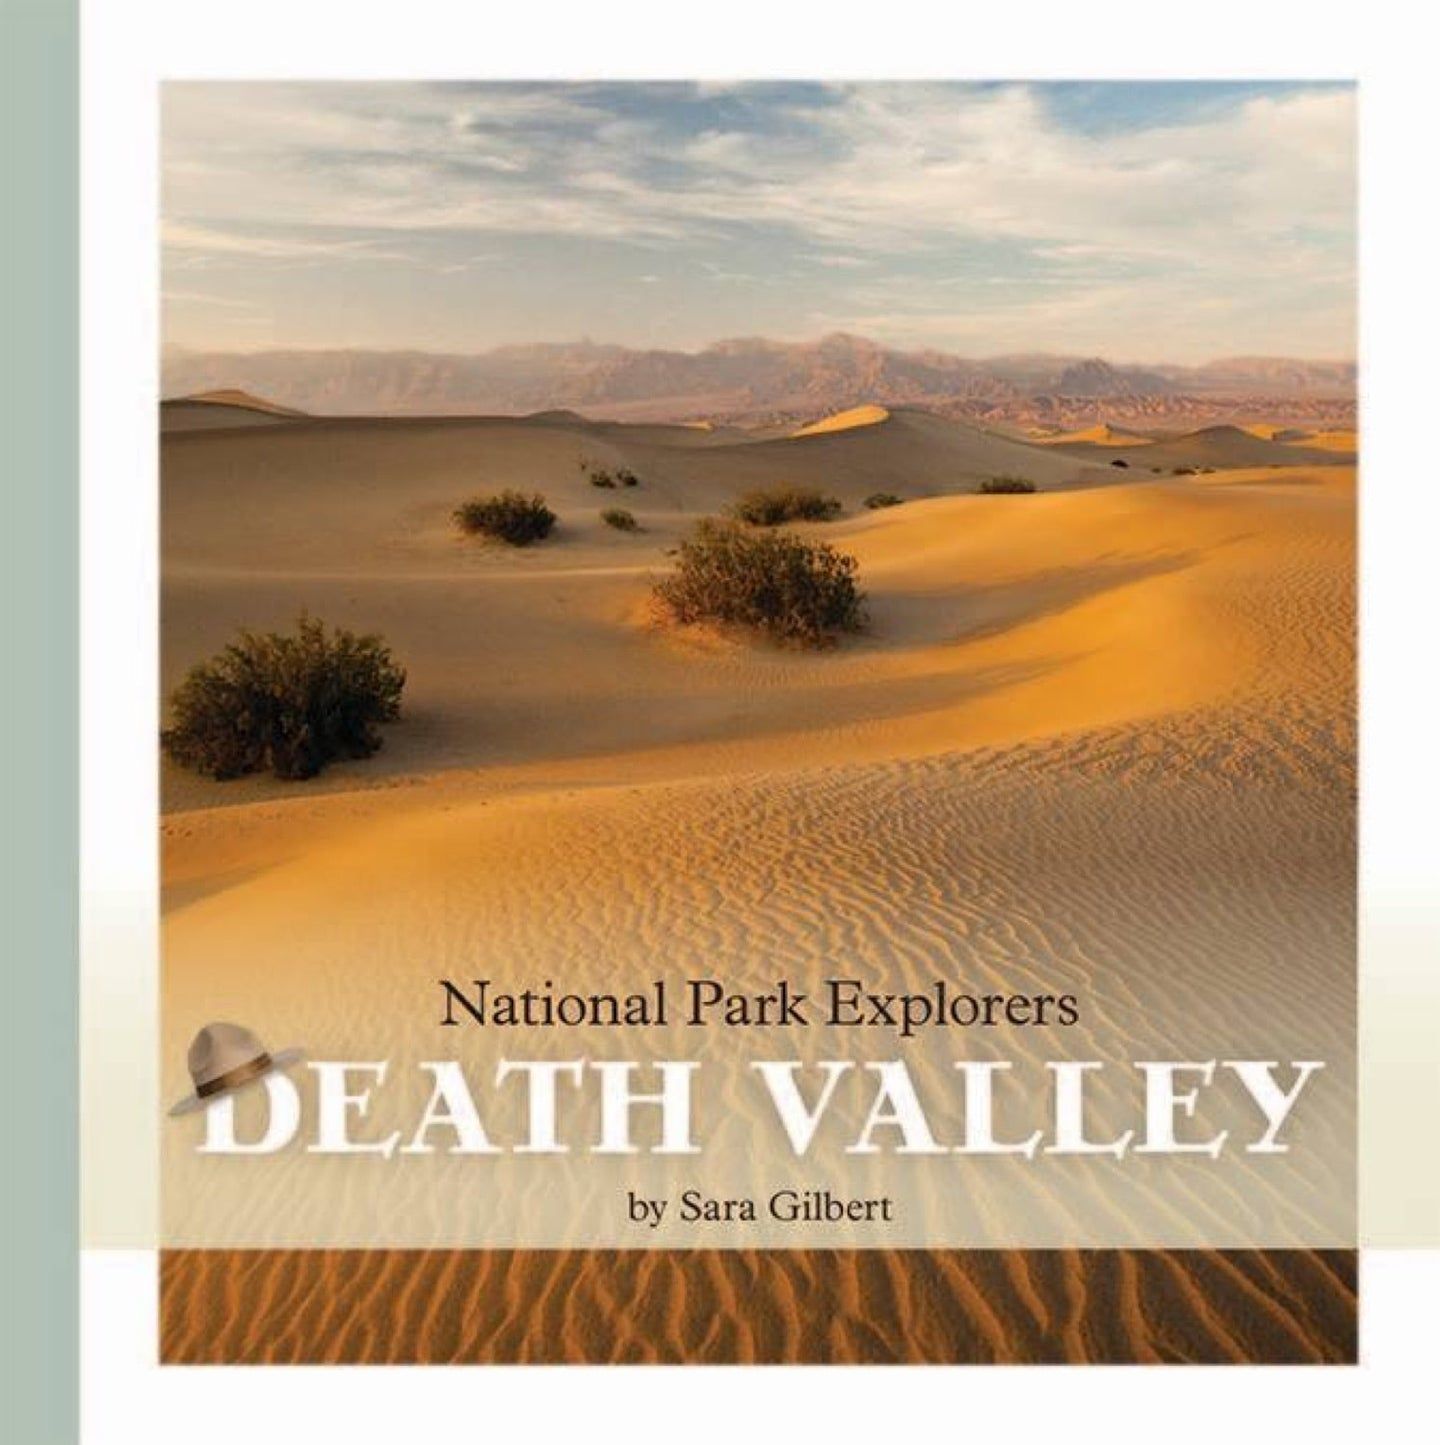 National Park Explorers: Death Valley